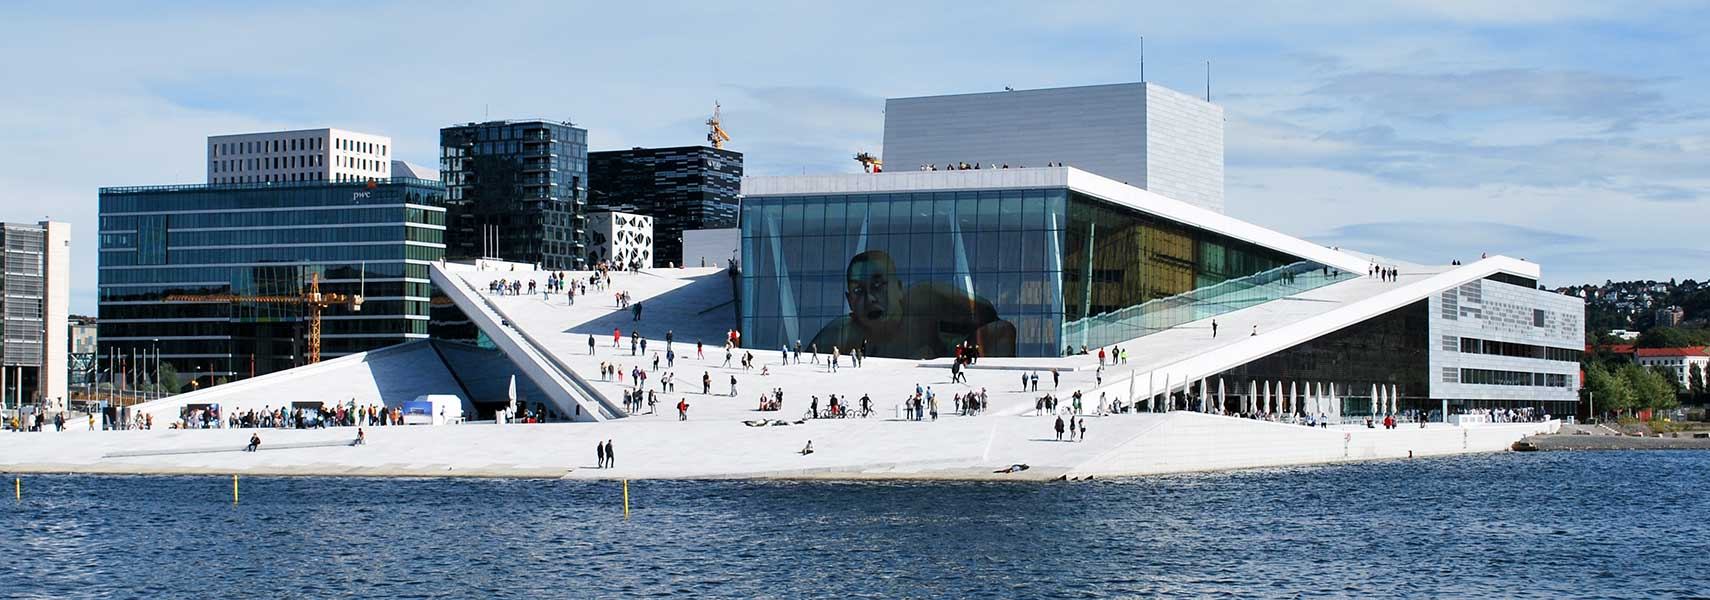 Google map of oslo norway nations online project map of the city of oslo norway oslo opera house at kirsten flagstads plass sciox Gallery